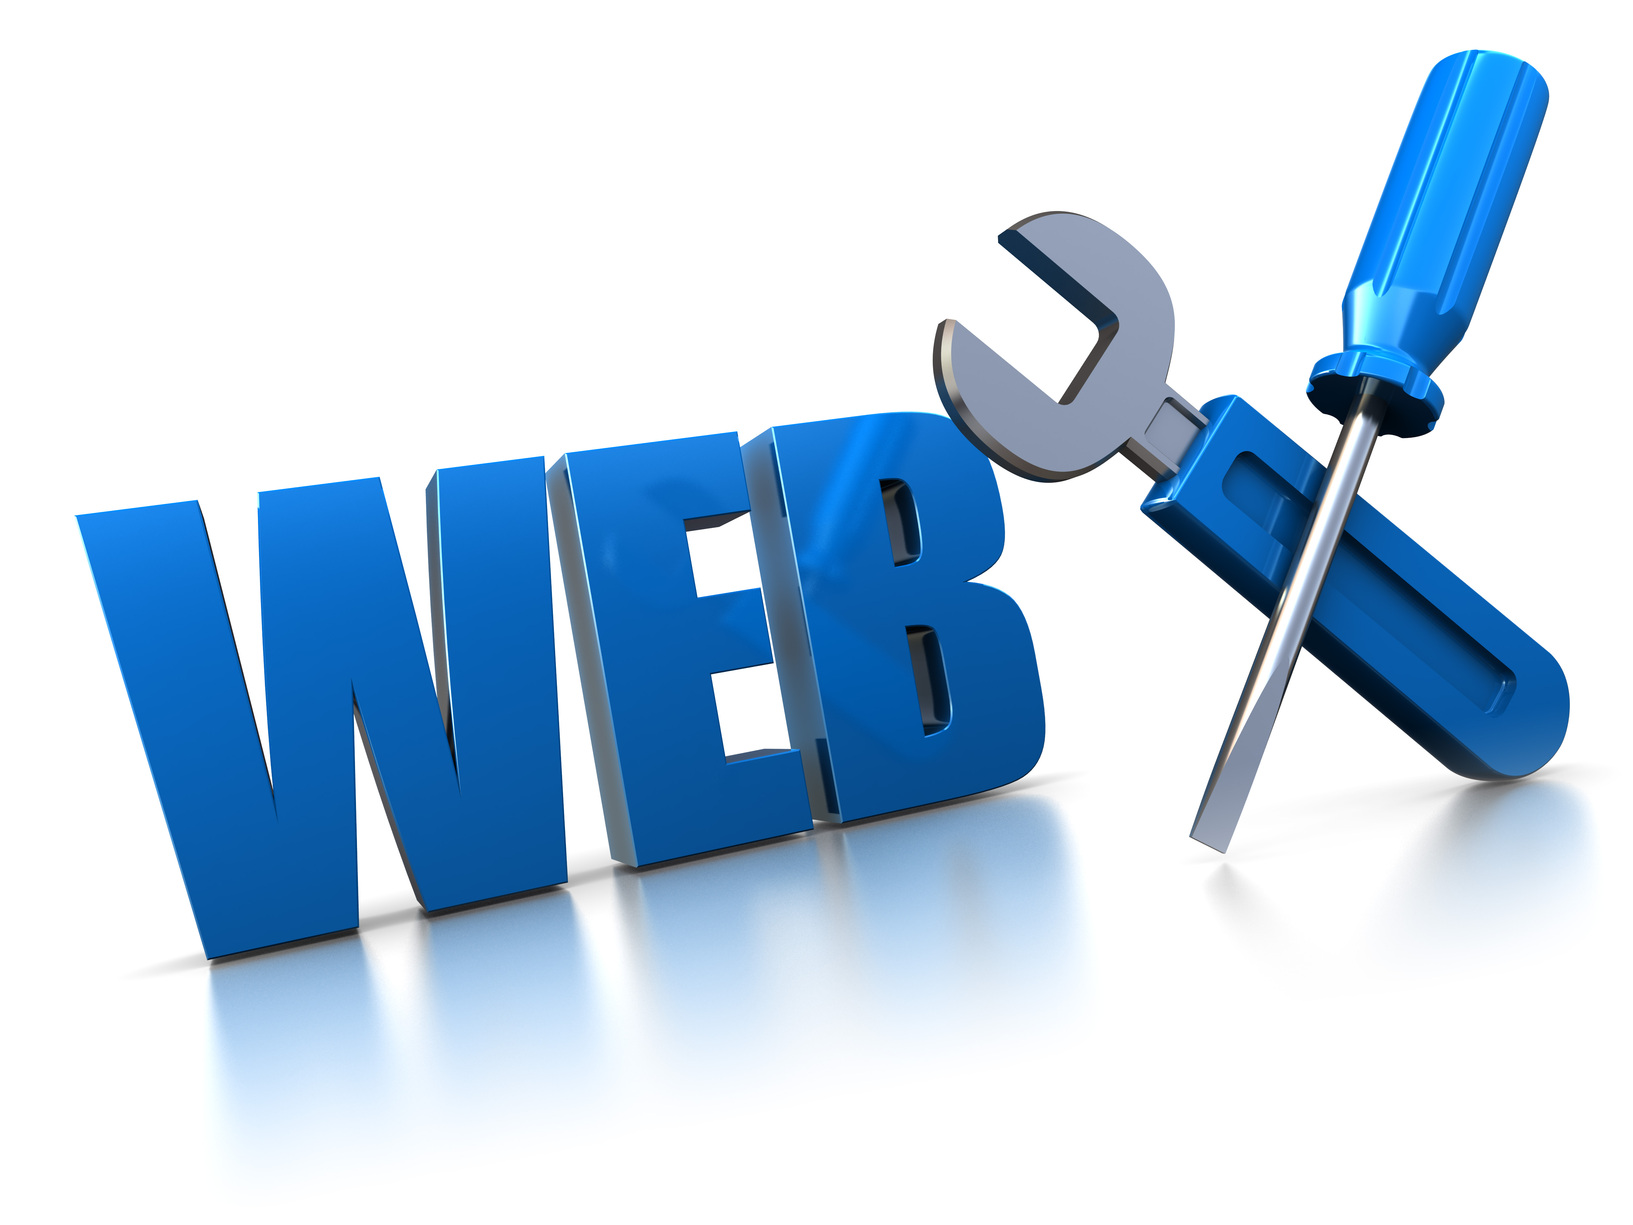 3d illustration of web construction symbol with wrench and screwdriver